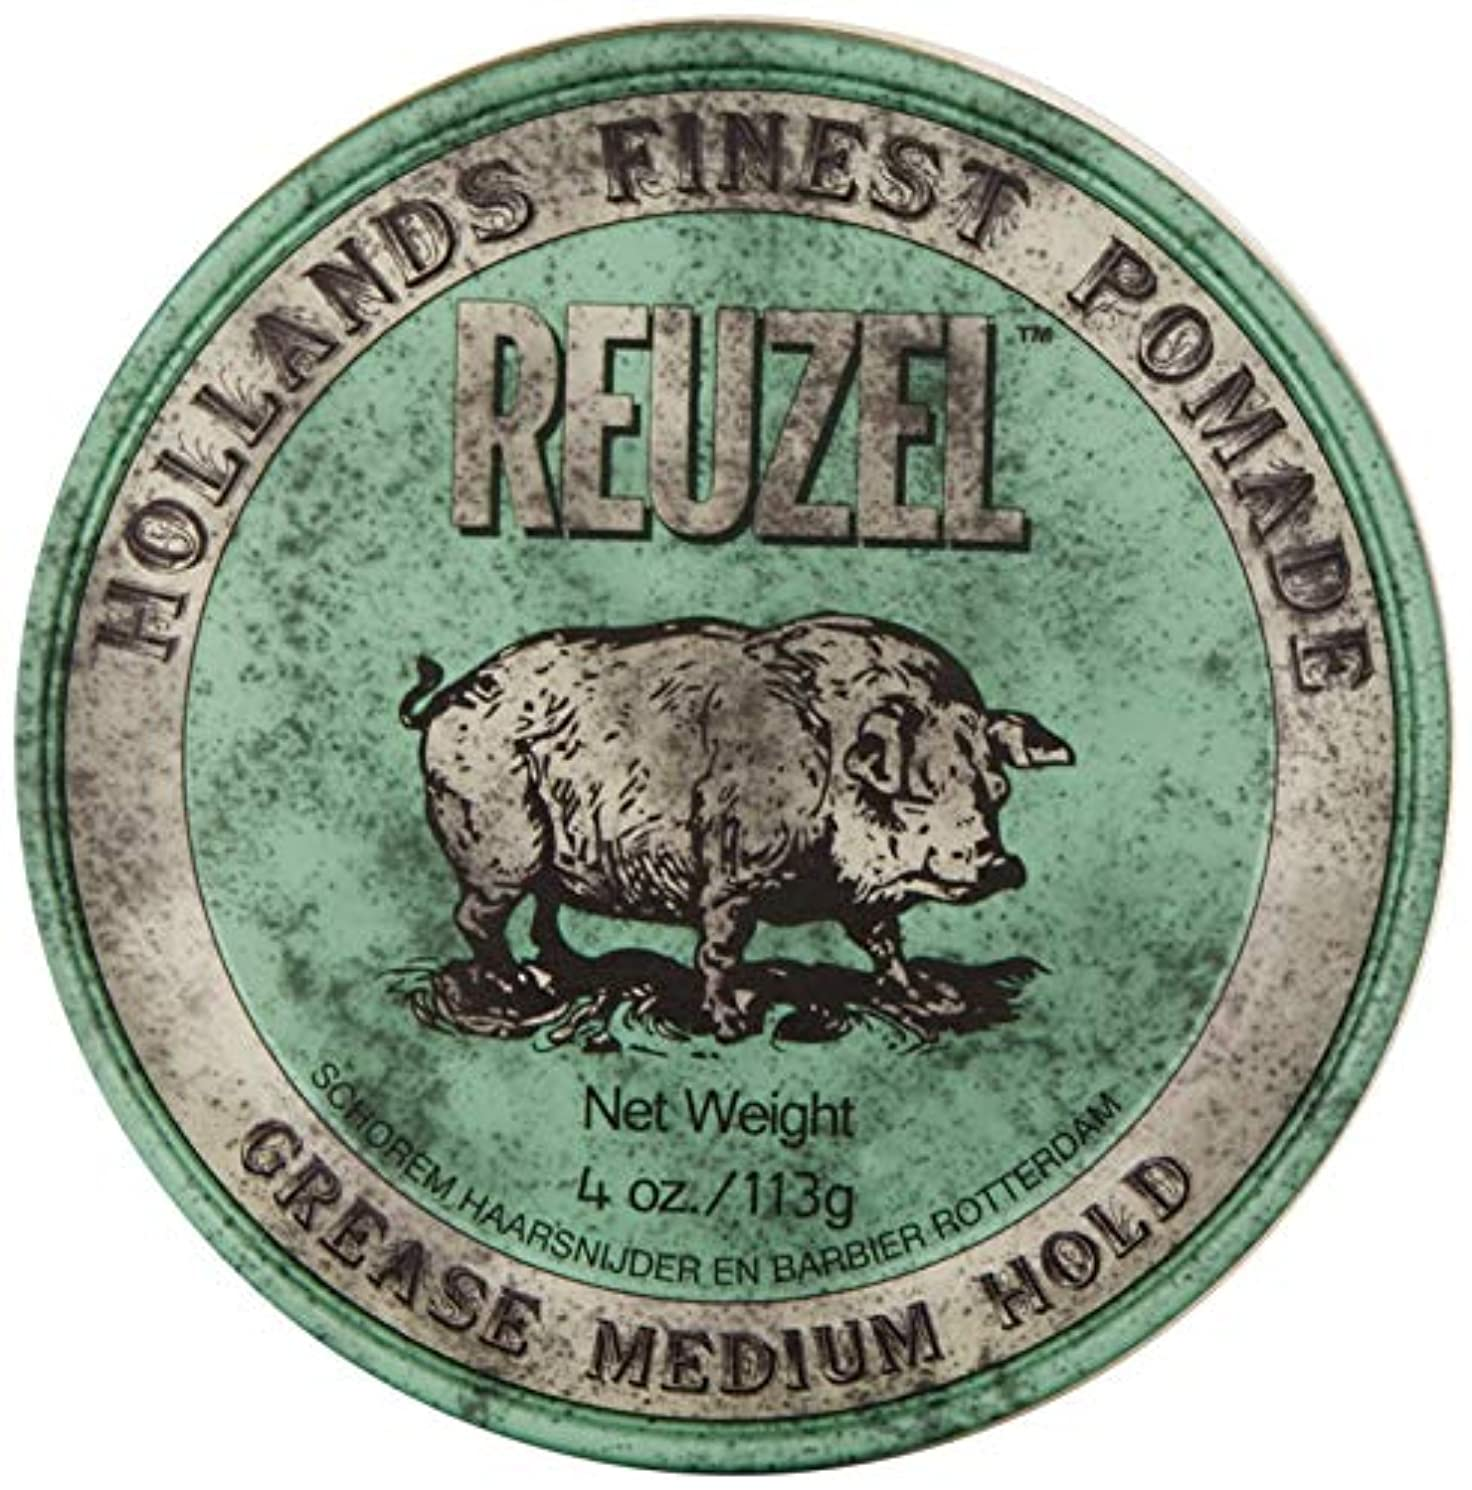 実験をする伝統的子豚Reuzel Medium Green Grease Hold Pomade by Reuzel